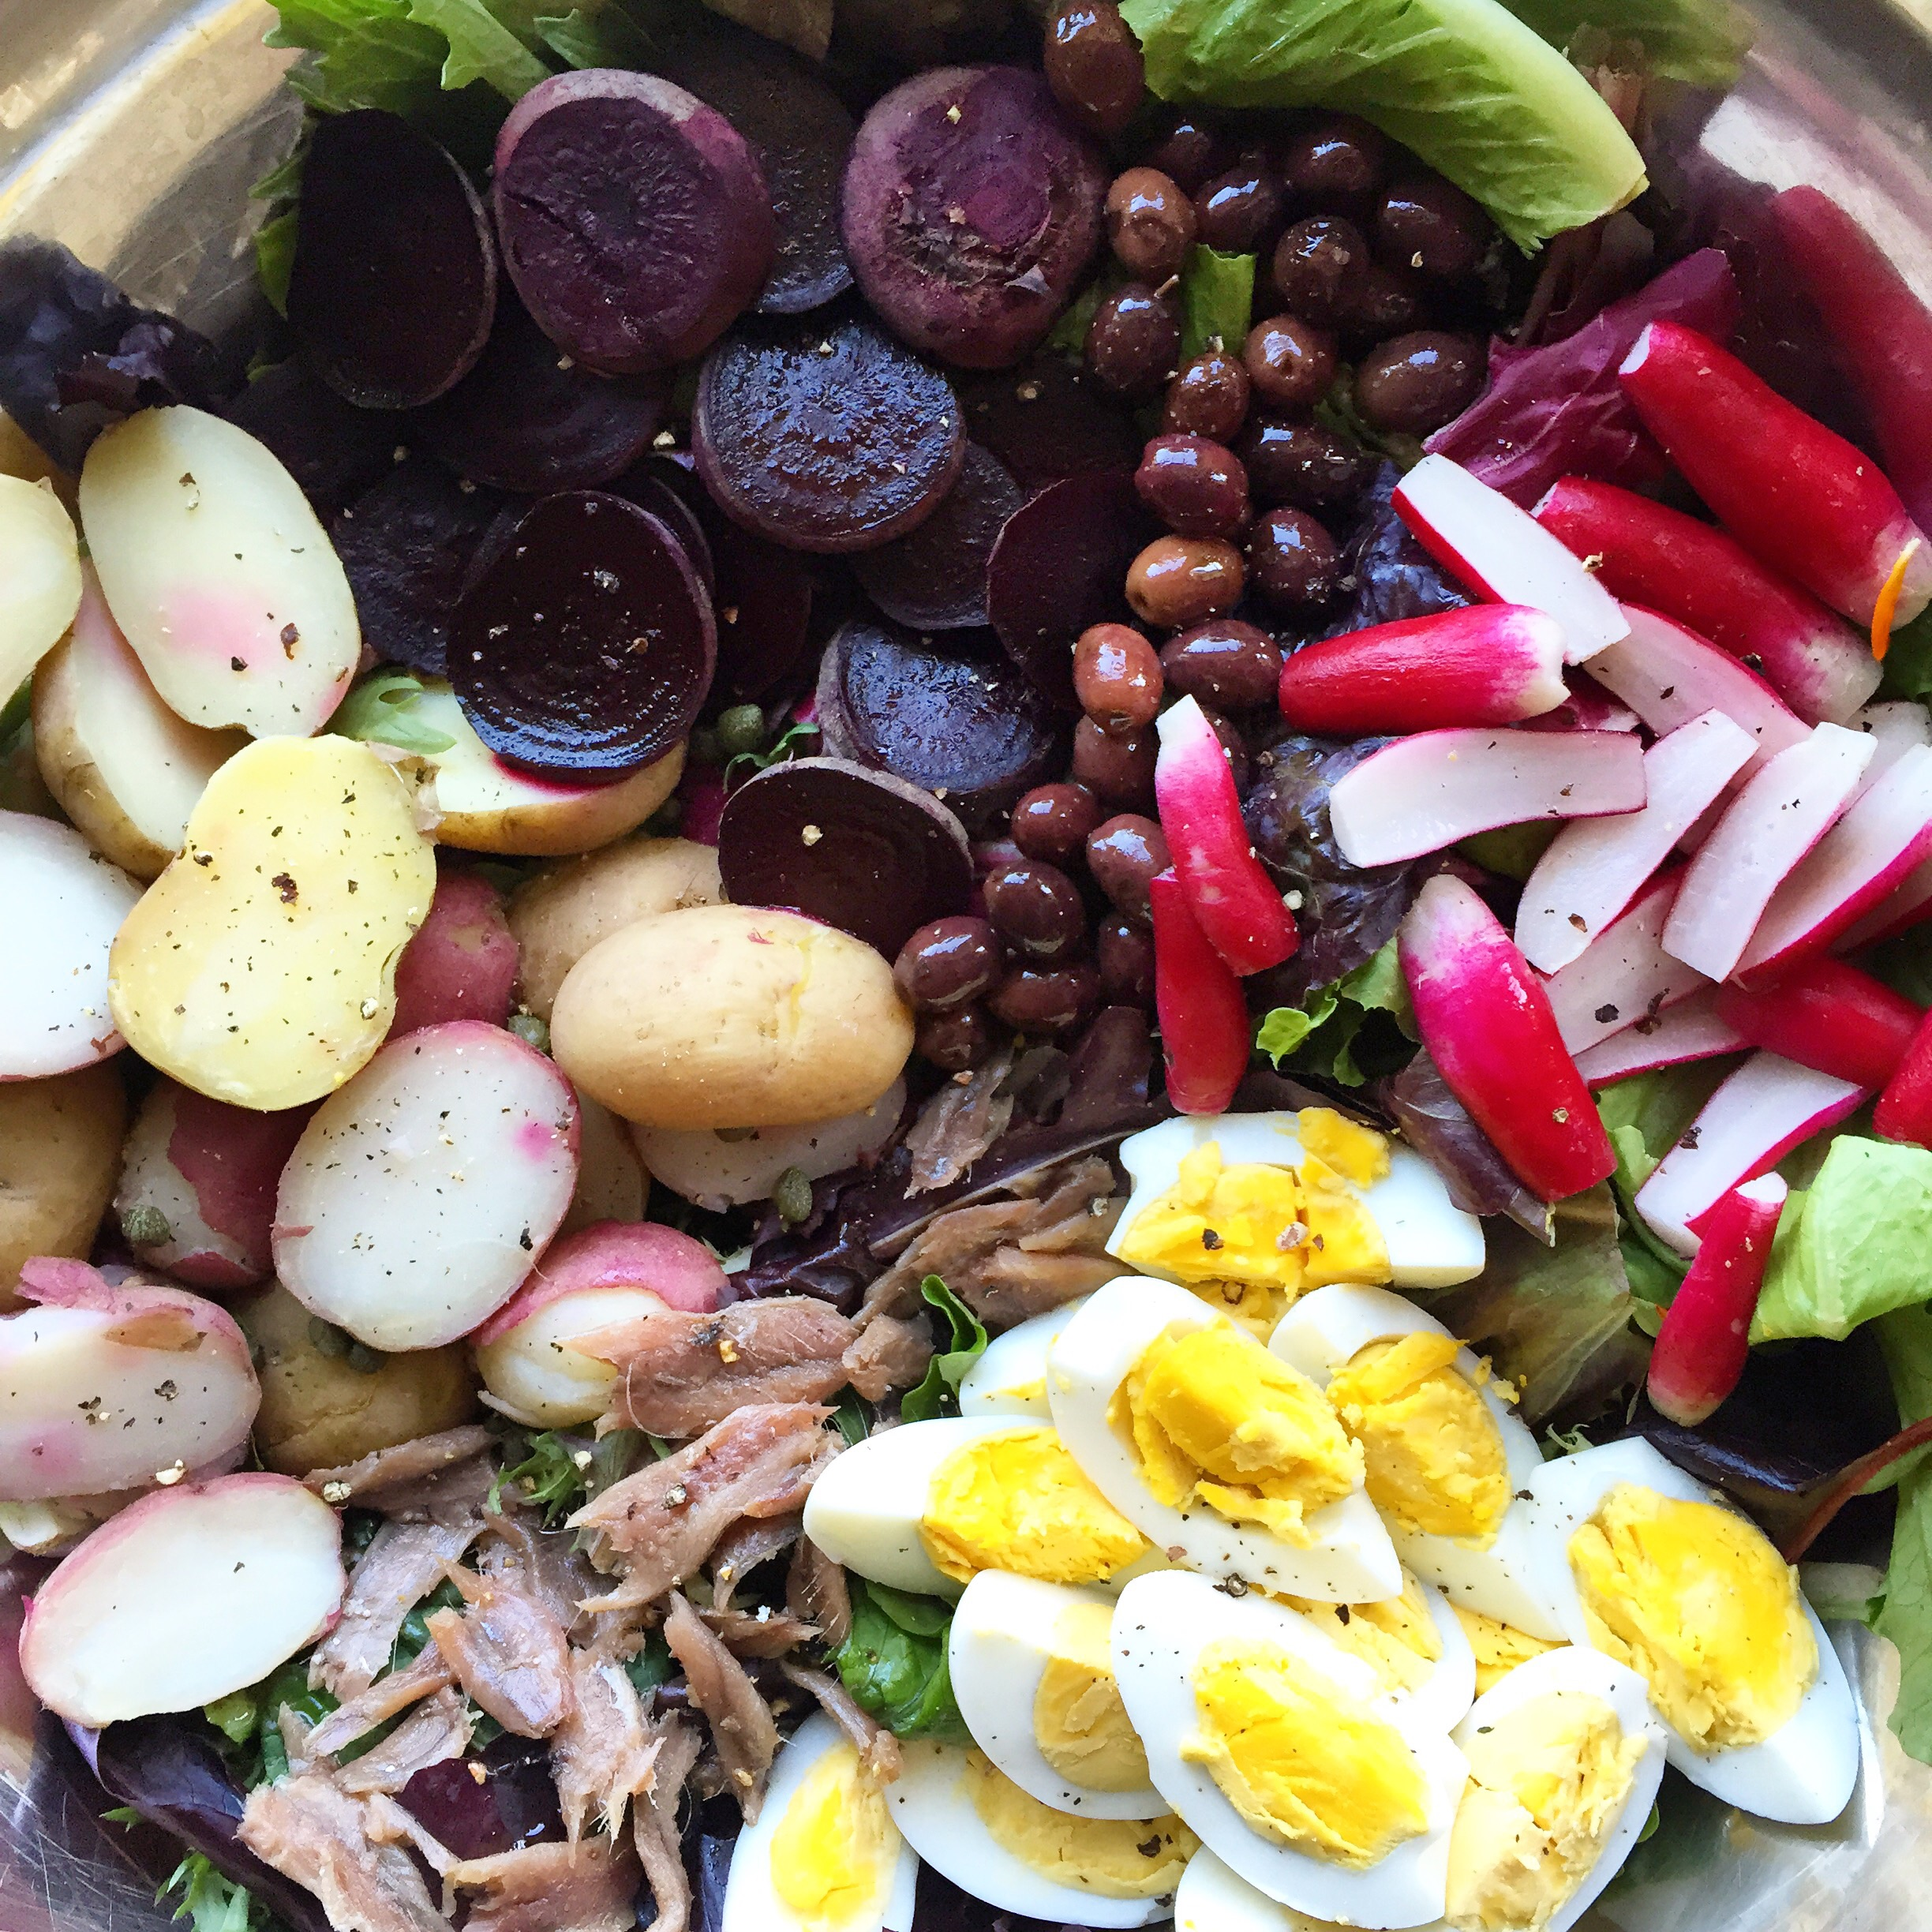 Deanna's Salade Niçoise with Beets and Anchovies